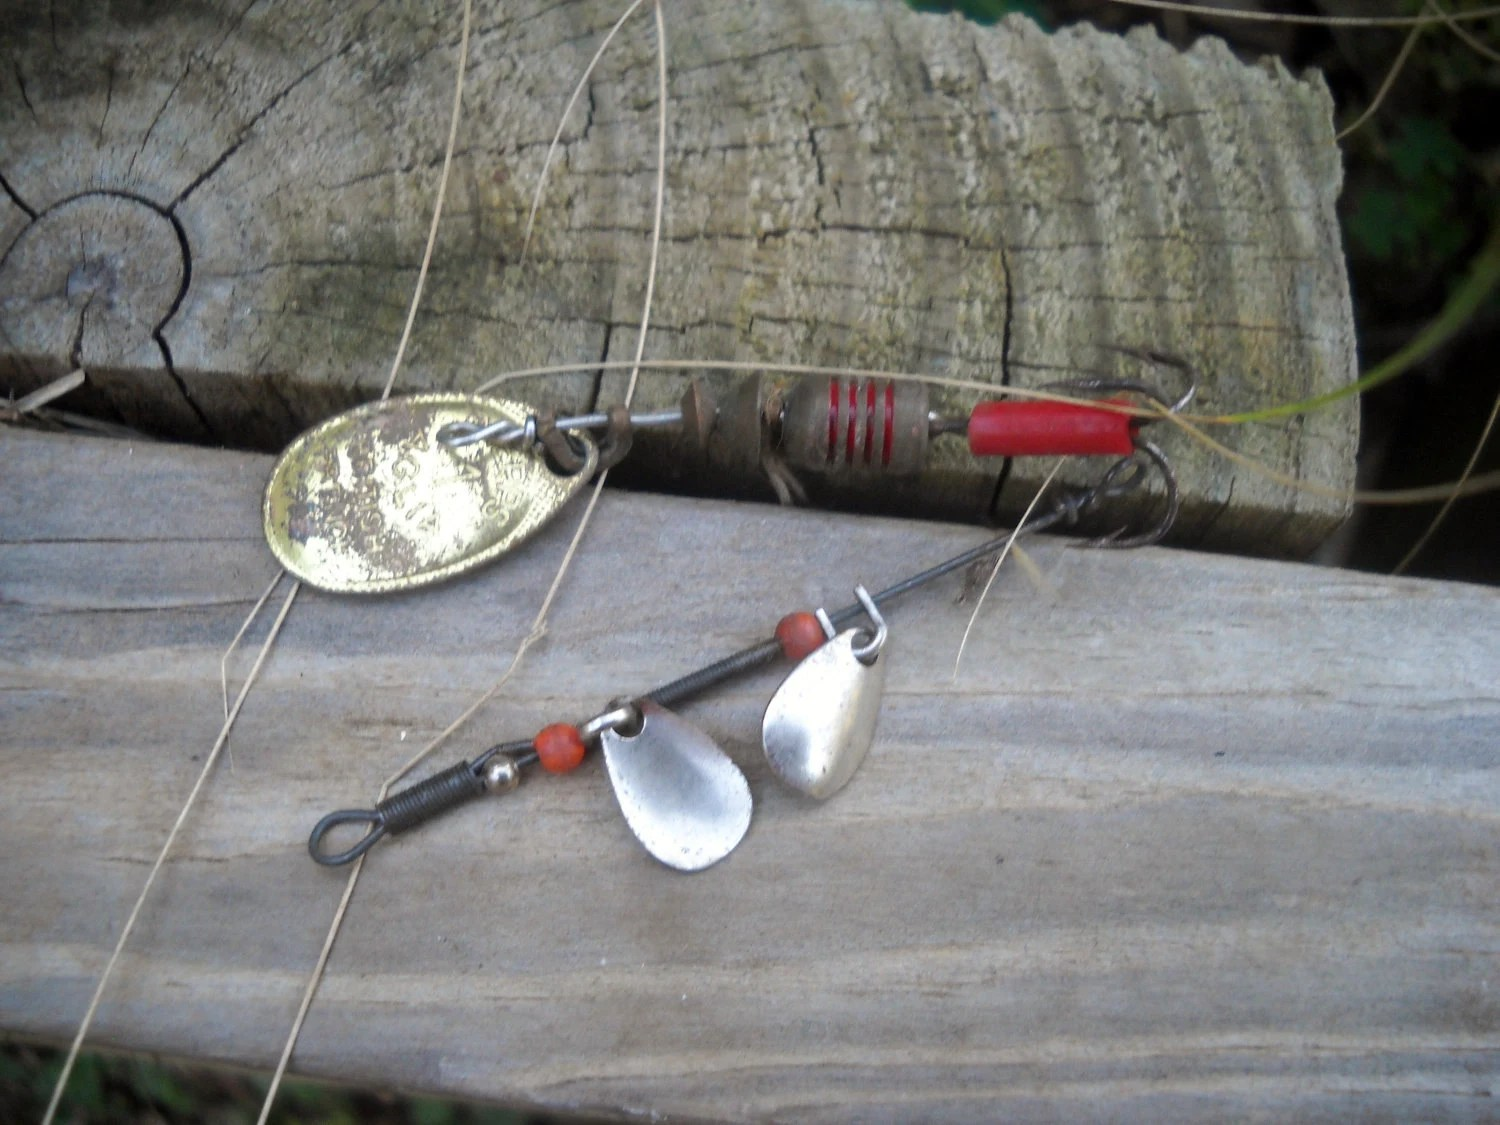 Vintage Fishing Tackle - AuntMegheysCottage